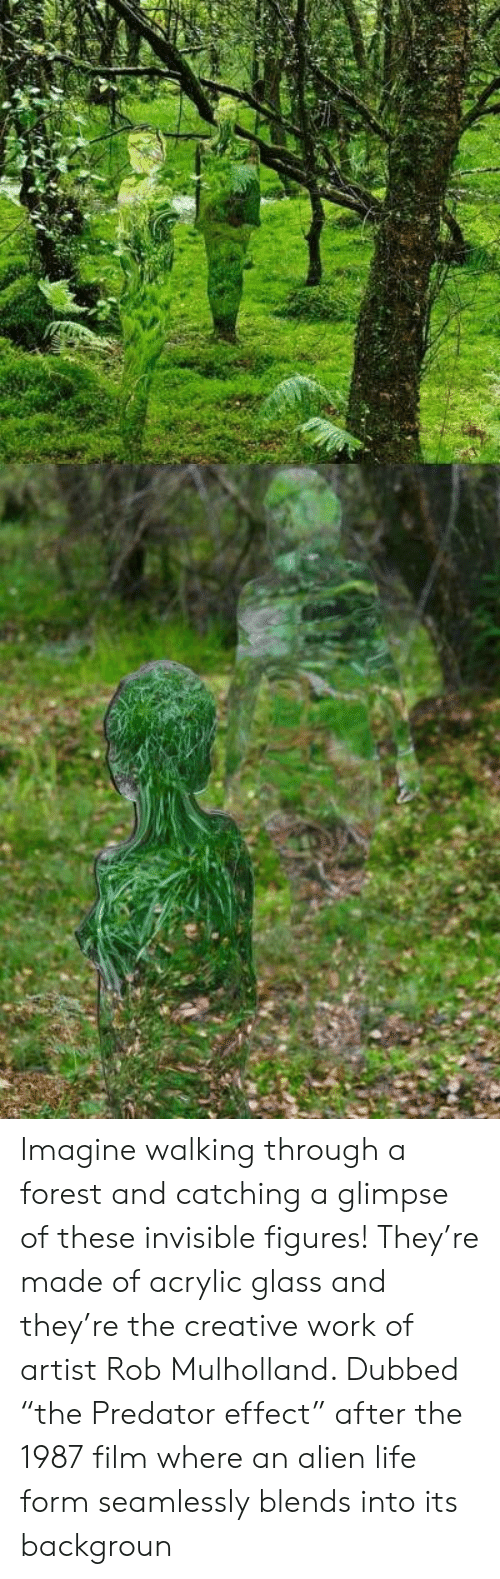 """dubbed: Imagine walking through a forest and catching a glimpse of these invisible figures! They're made of acrylic glass and they're the creative work of artist Rob Mulholland. Dubbed """"the Predator effect"""" after the 1987 film where an alien life form seamlessly blends into its backgroun"""